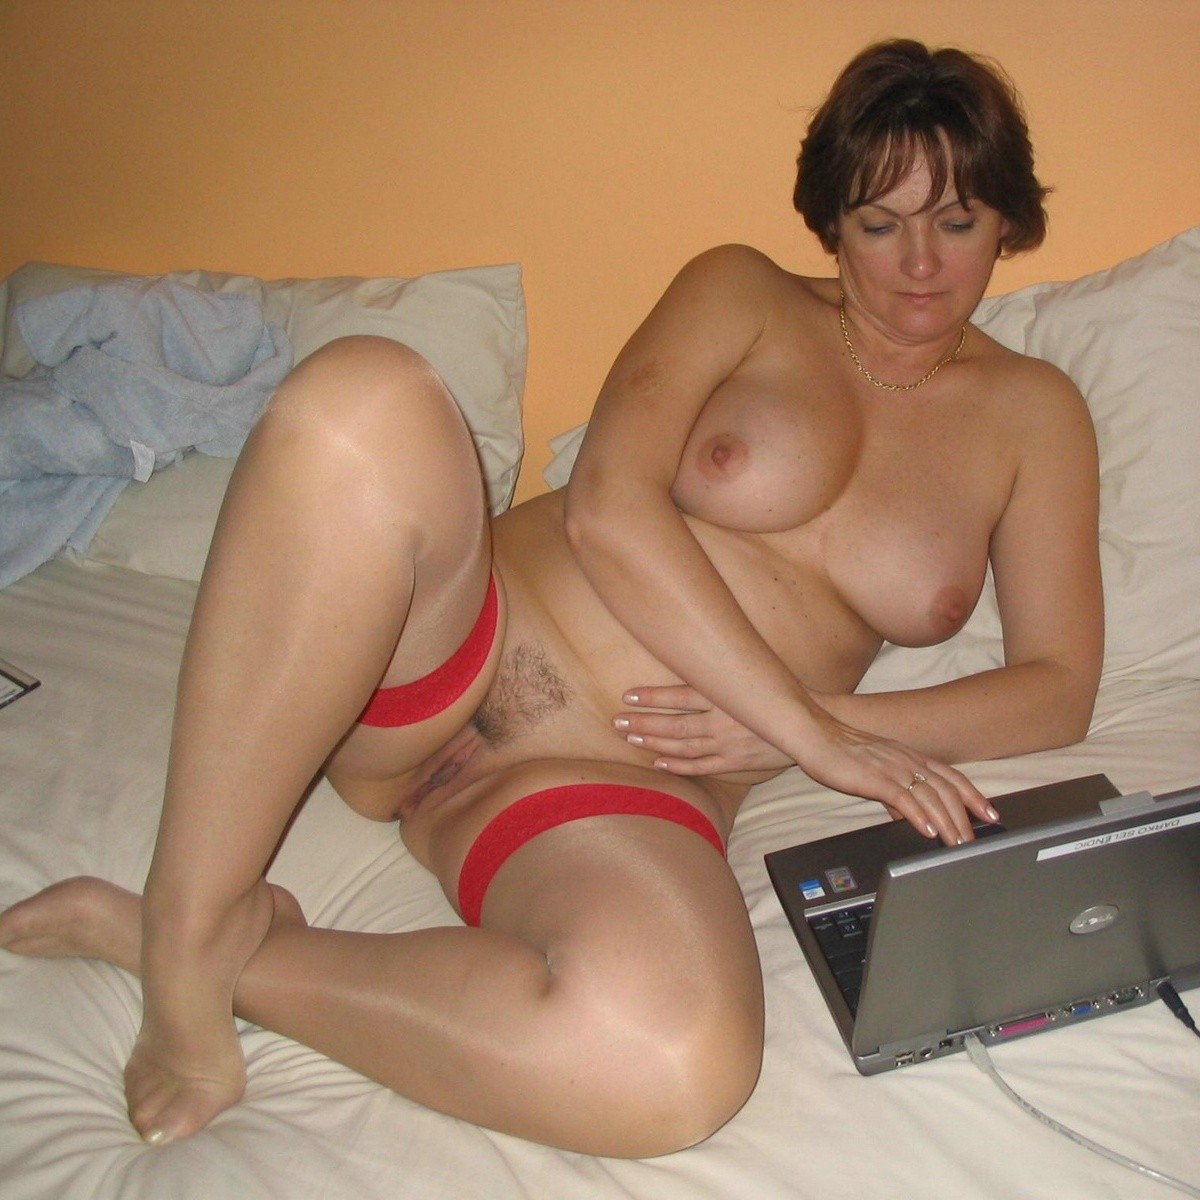 milfs and soccer moms